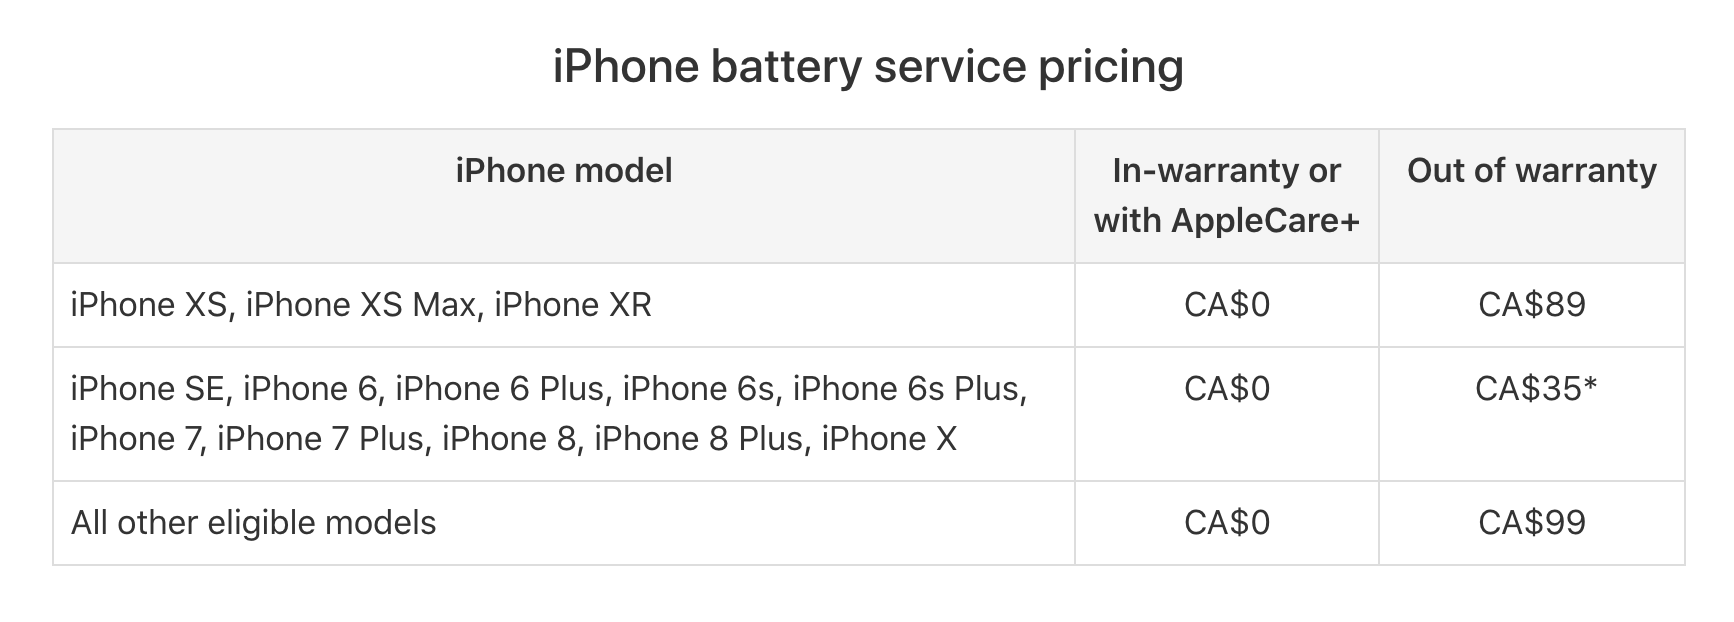 iphone-battery-service-pricing.png